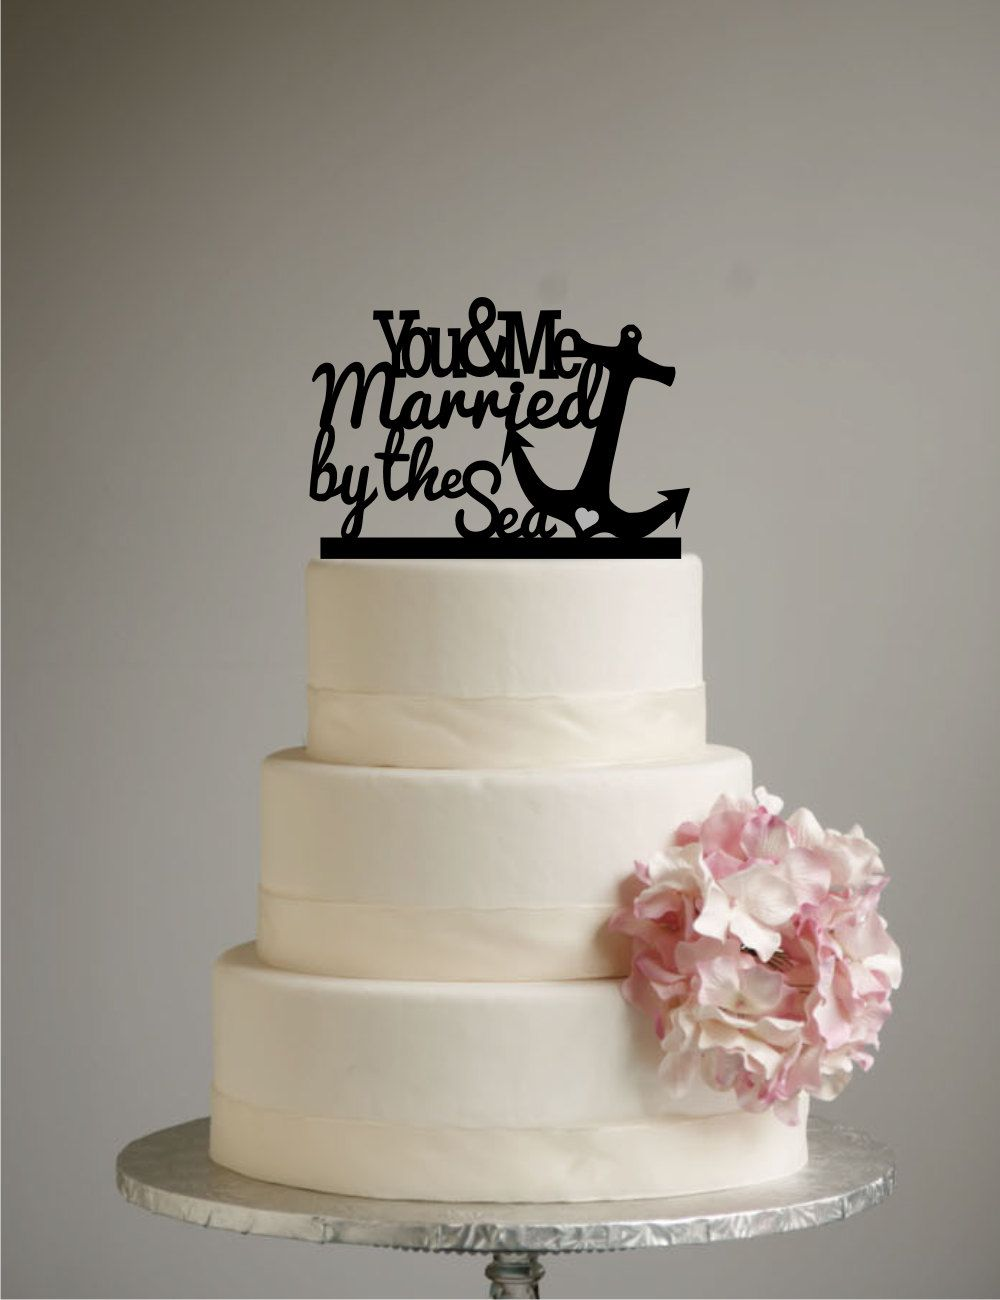 Beach Wedding Cake Topper Destination Wedding You And Me Married By The Sea Nautical Beach Wedding Cake Toppers Beach Wedding Cake Wedding Cake Toppers